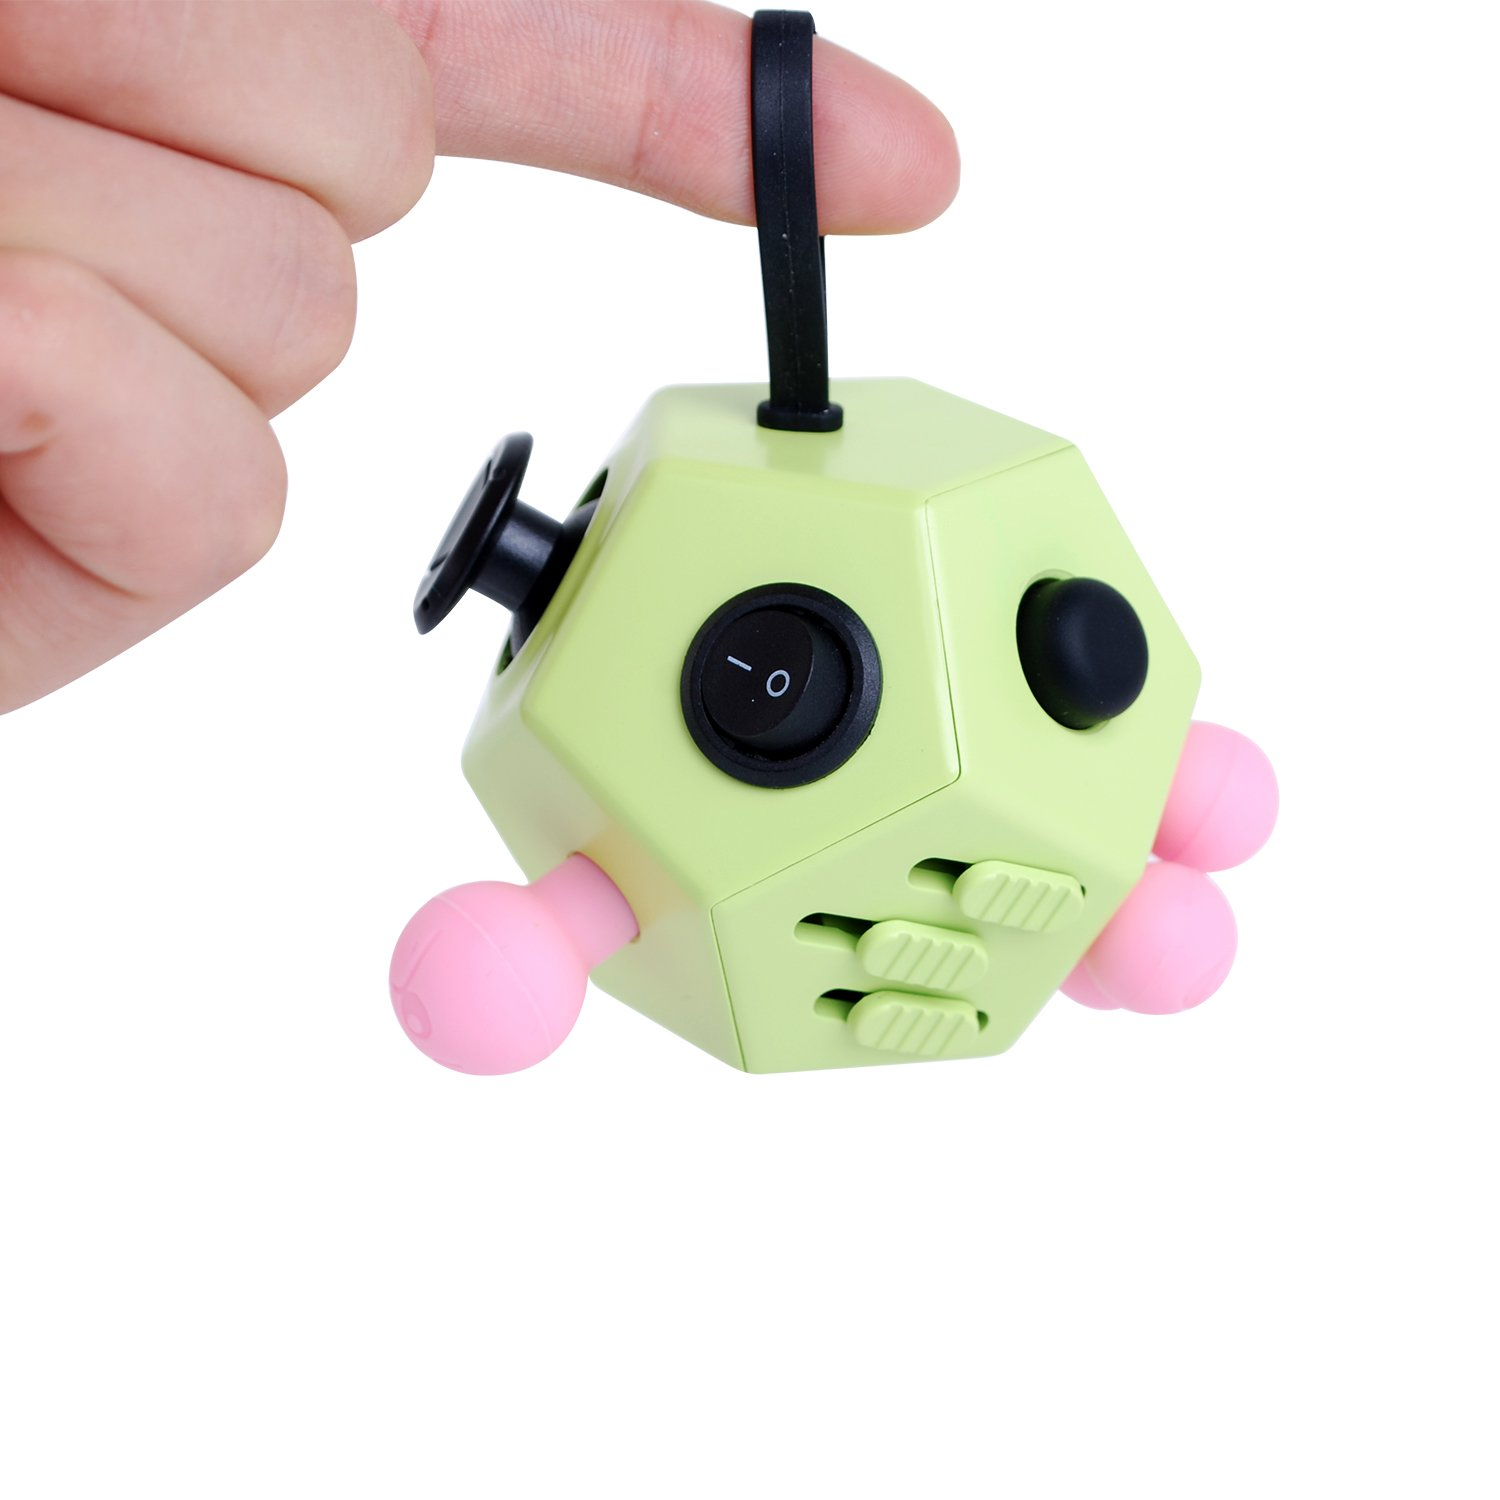 Fidget Cube Toys, Relieves Stress and Increases Focus for Adults and Children with ADHD ADD OCD Autism - 12 Sides Fidget Dice (Green) by BSL (Image #5)